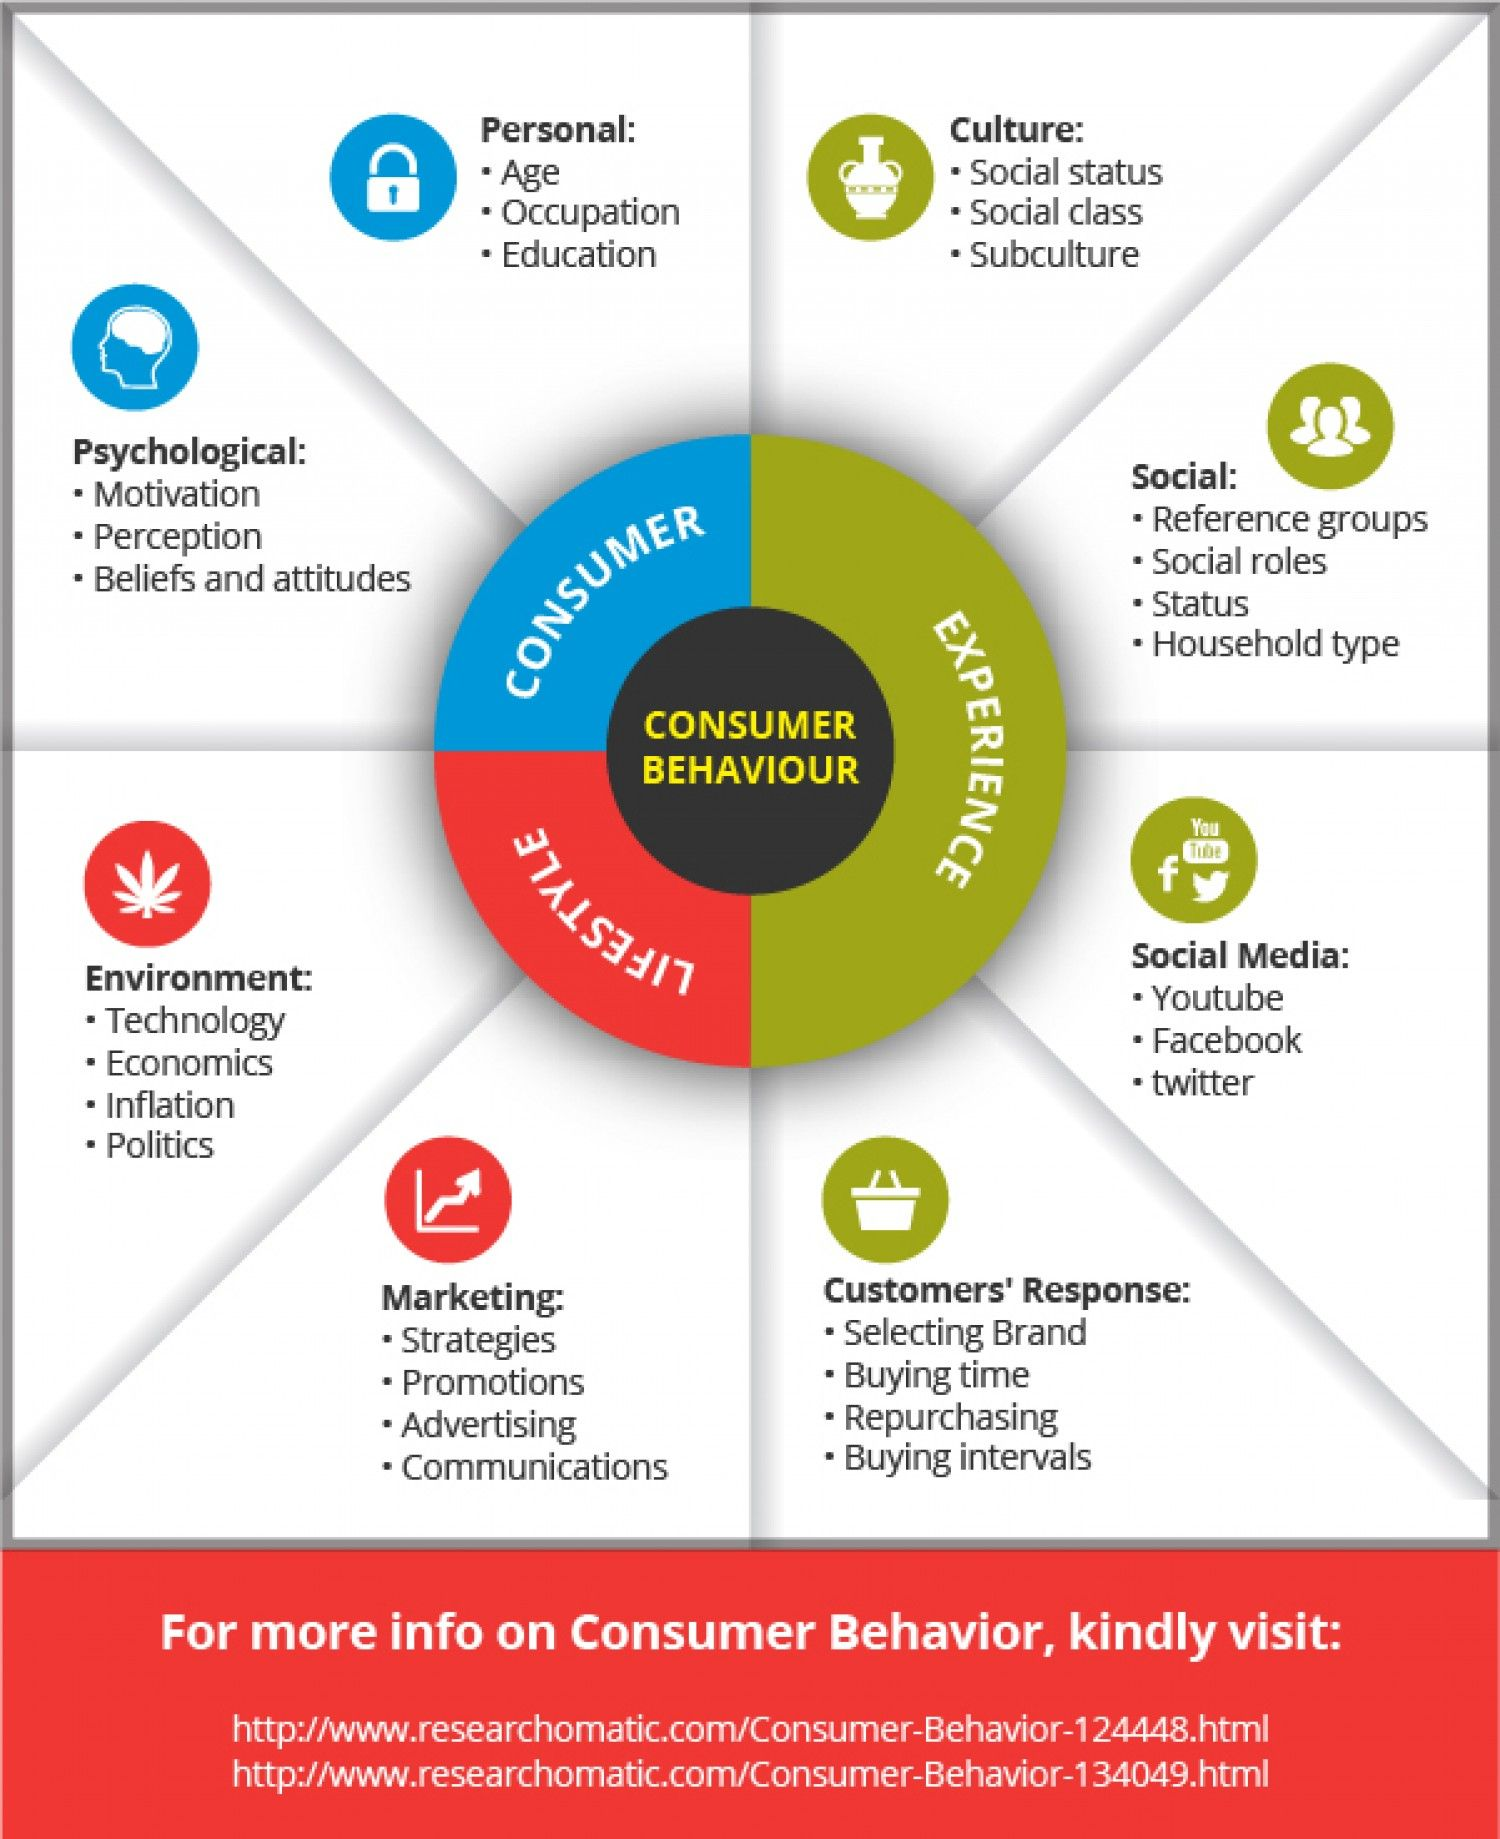 Consumer Behavior Infographic